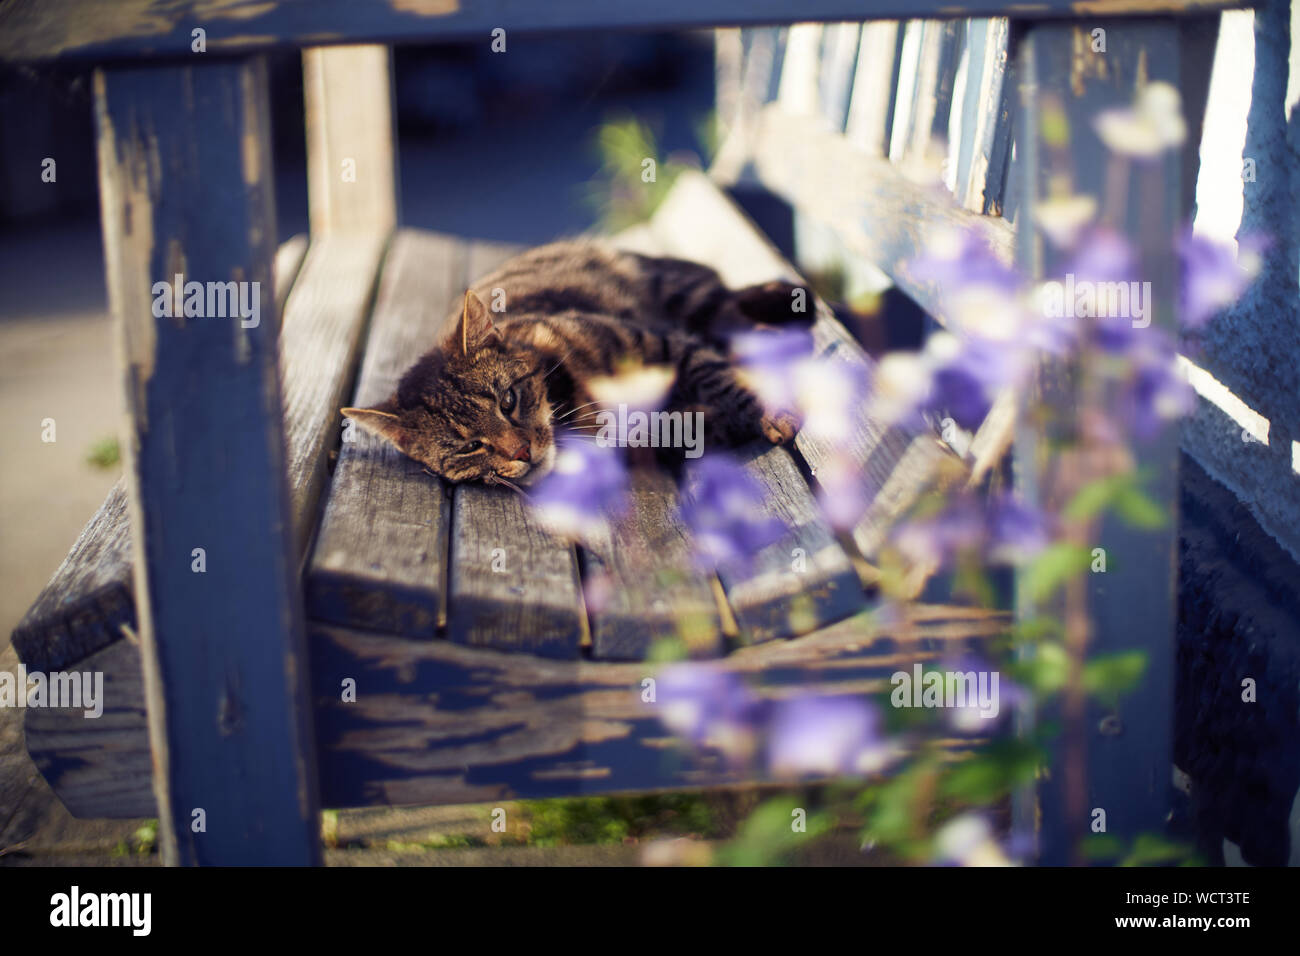 A gray cat is chilling on a wooden bench outdoors Stock Photo